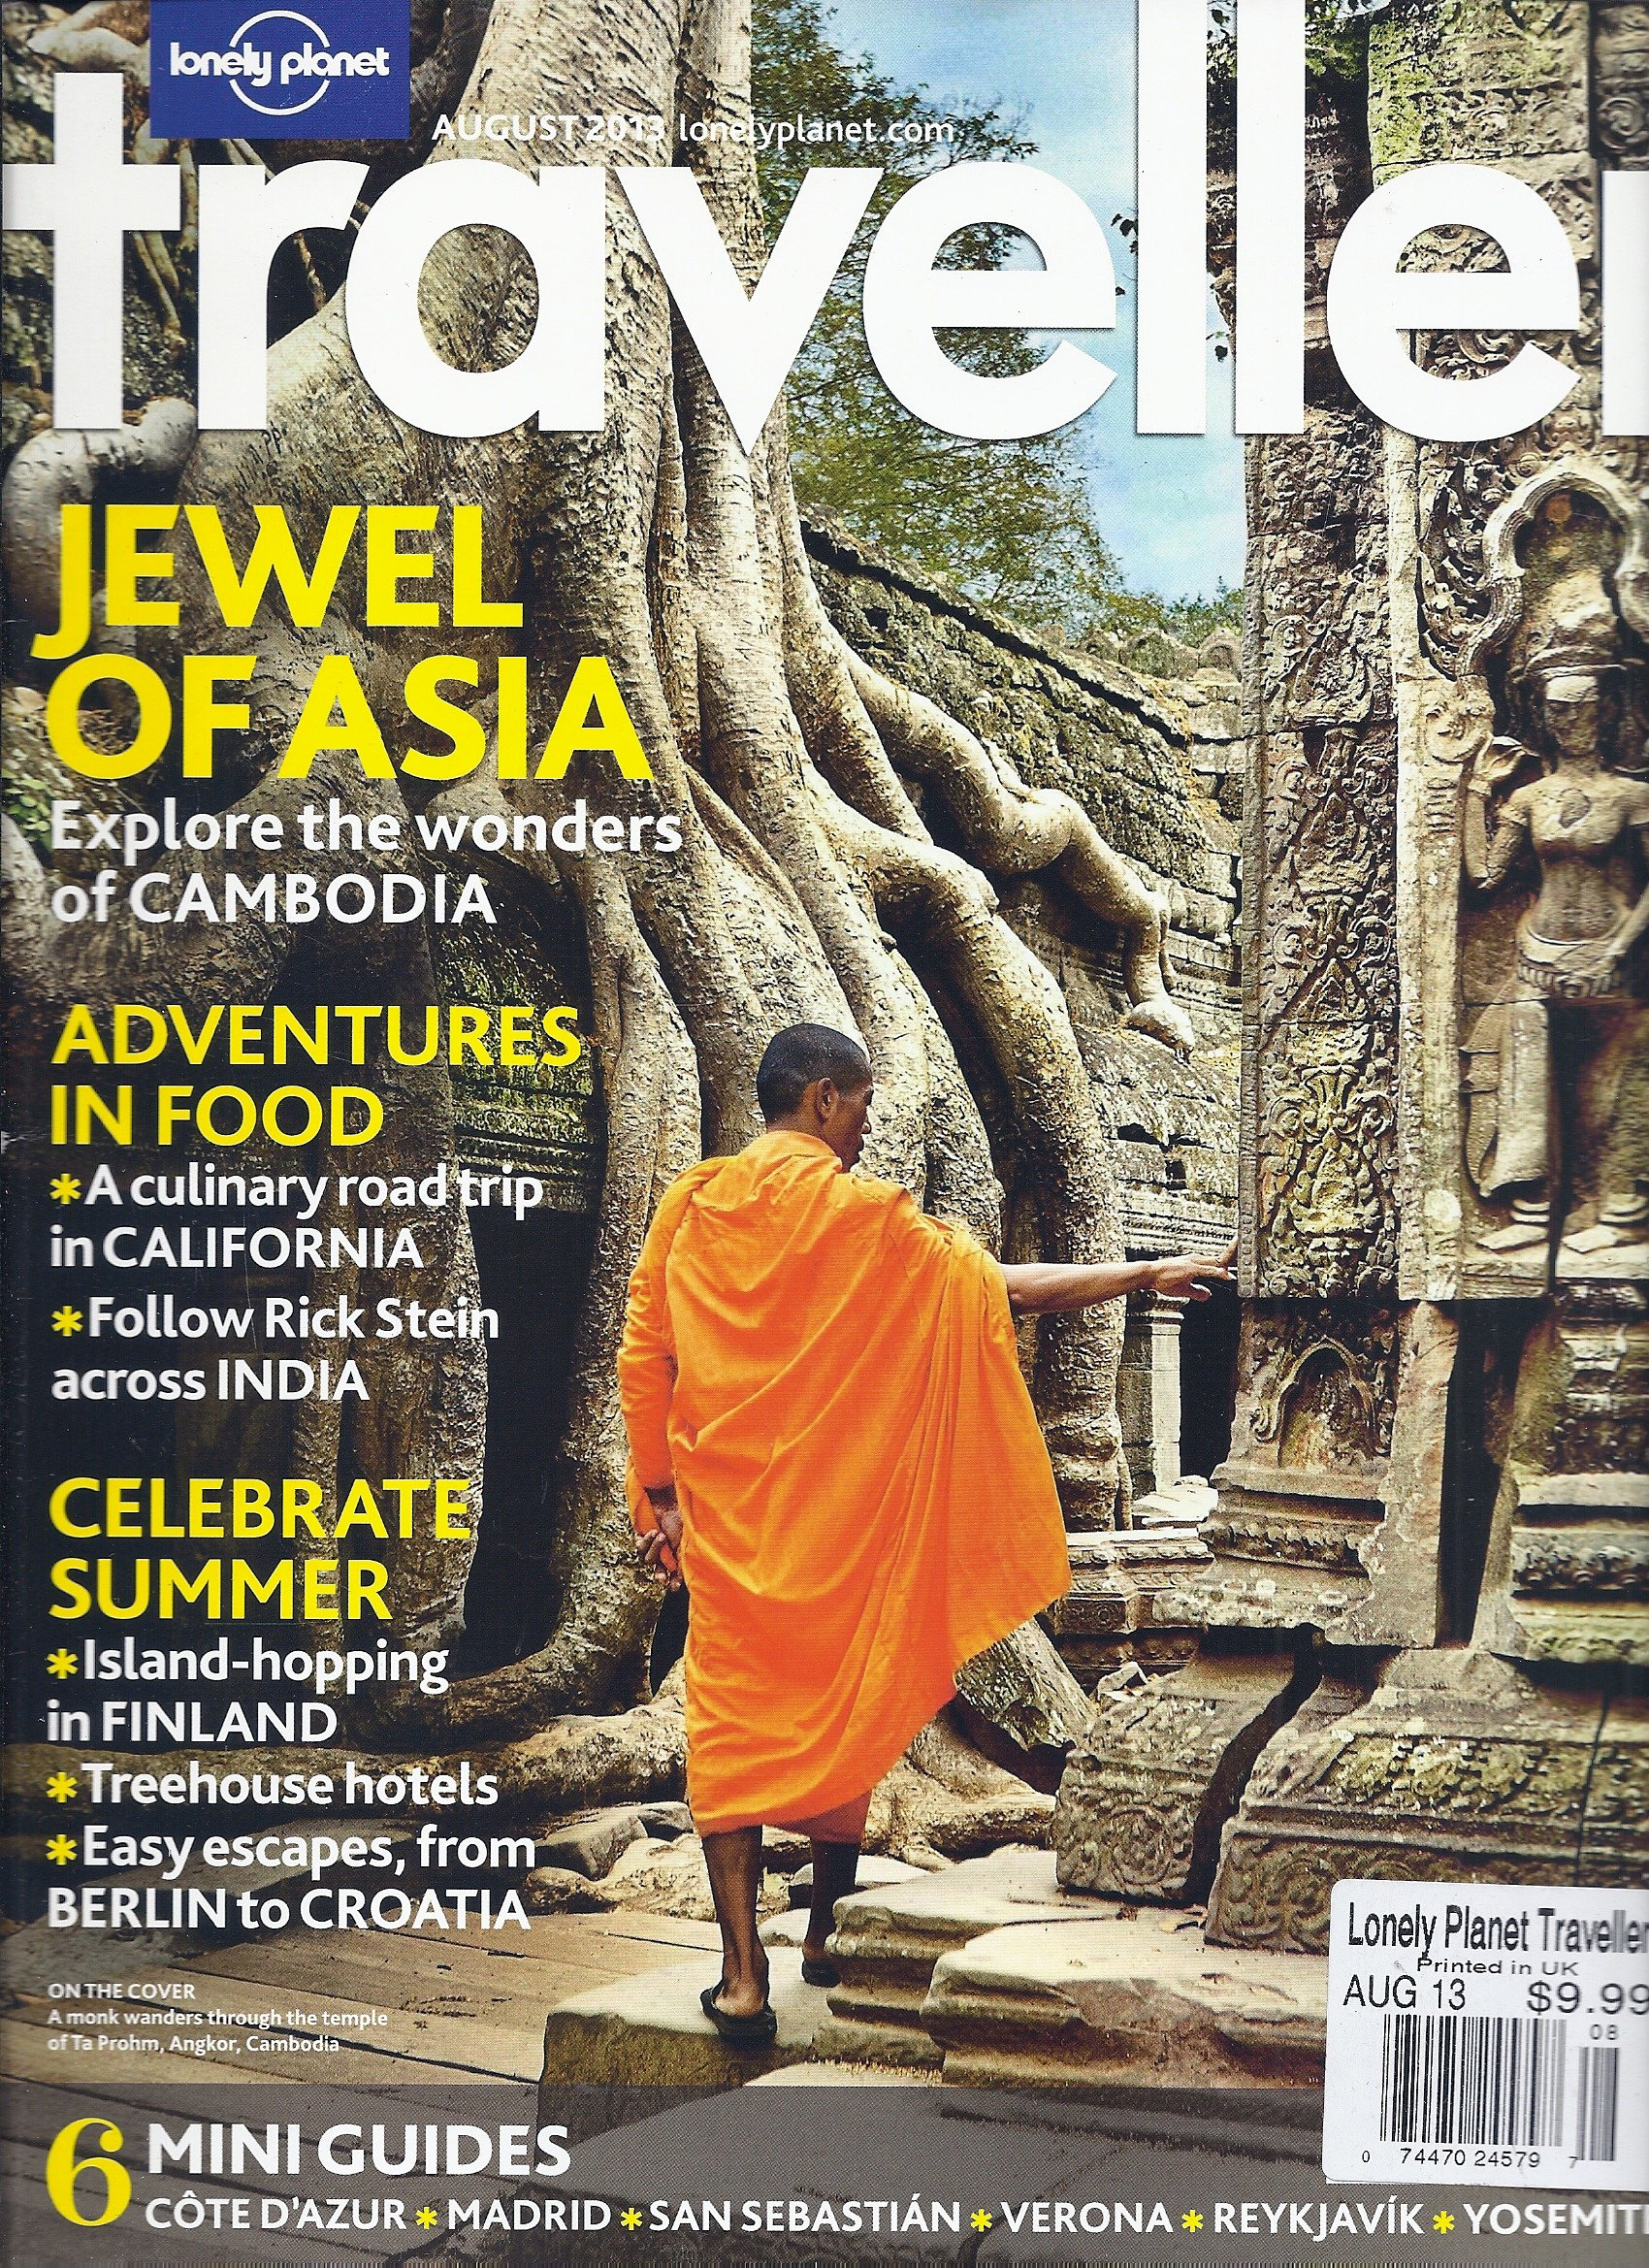 Lonely Planet Traveler (Issue #56) (August 2013 (Jewel of Asia)) pdf